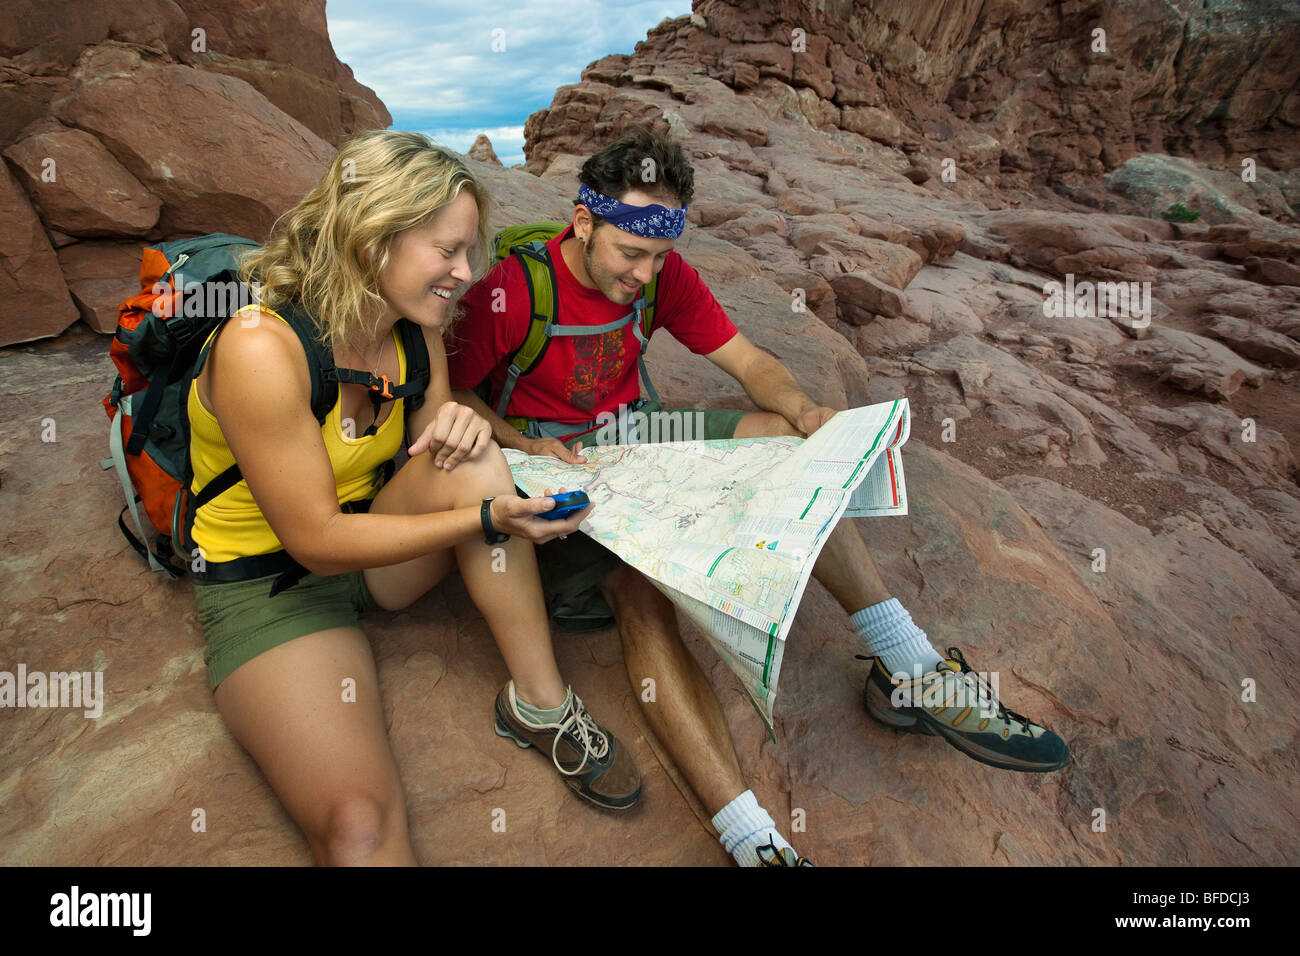 A smiling couple using a map and GPS in Arches National Park, Utah. - Stock Image